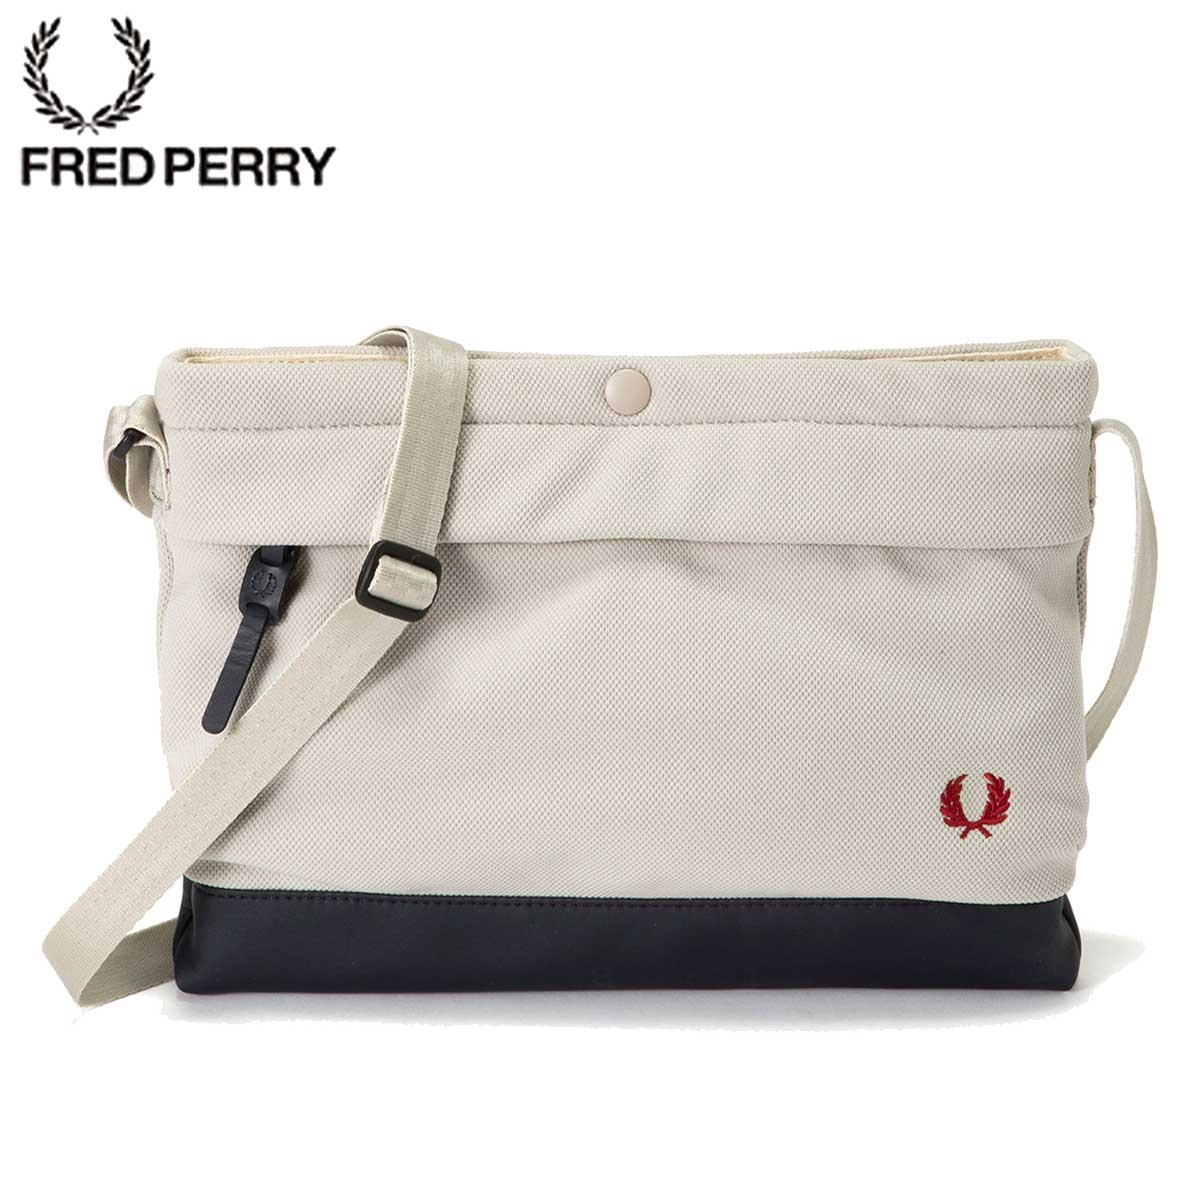 FRED PERRY フレッドペリー Pique Sacoche Bag F9543 24(OYSTER)